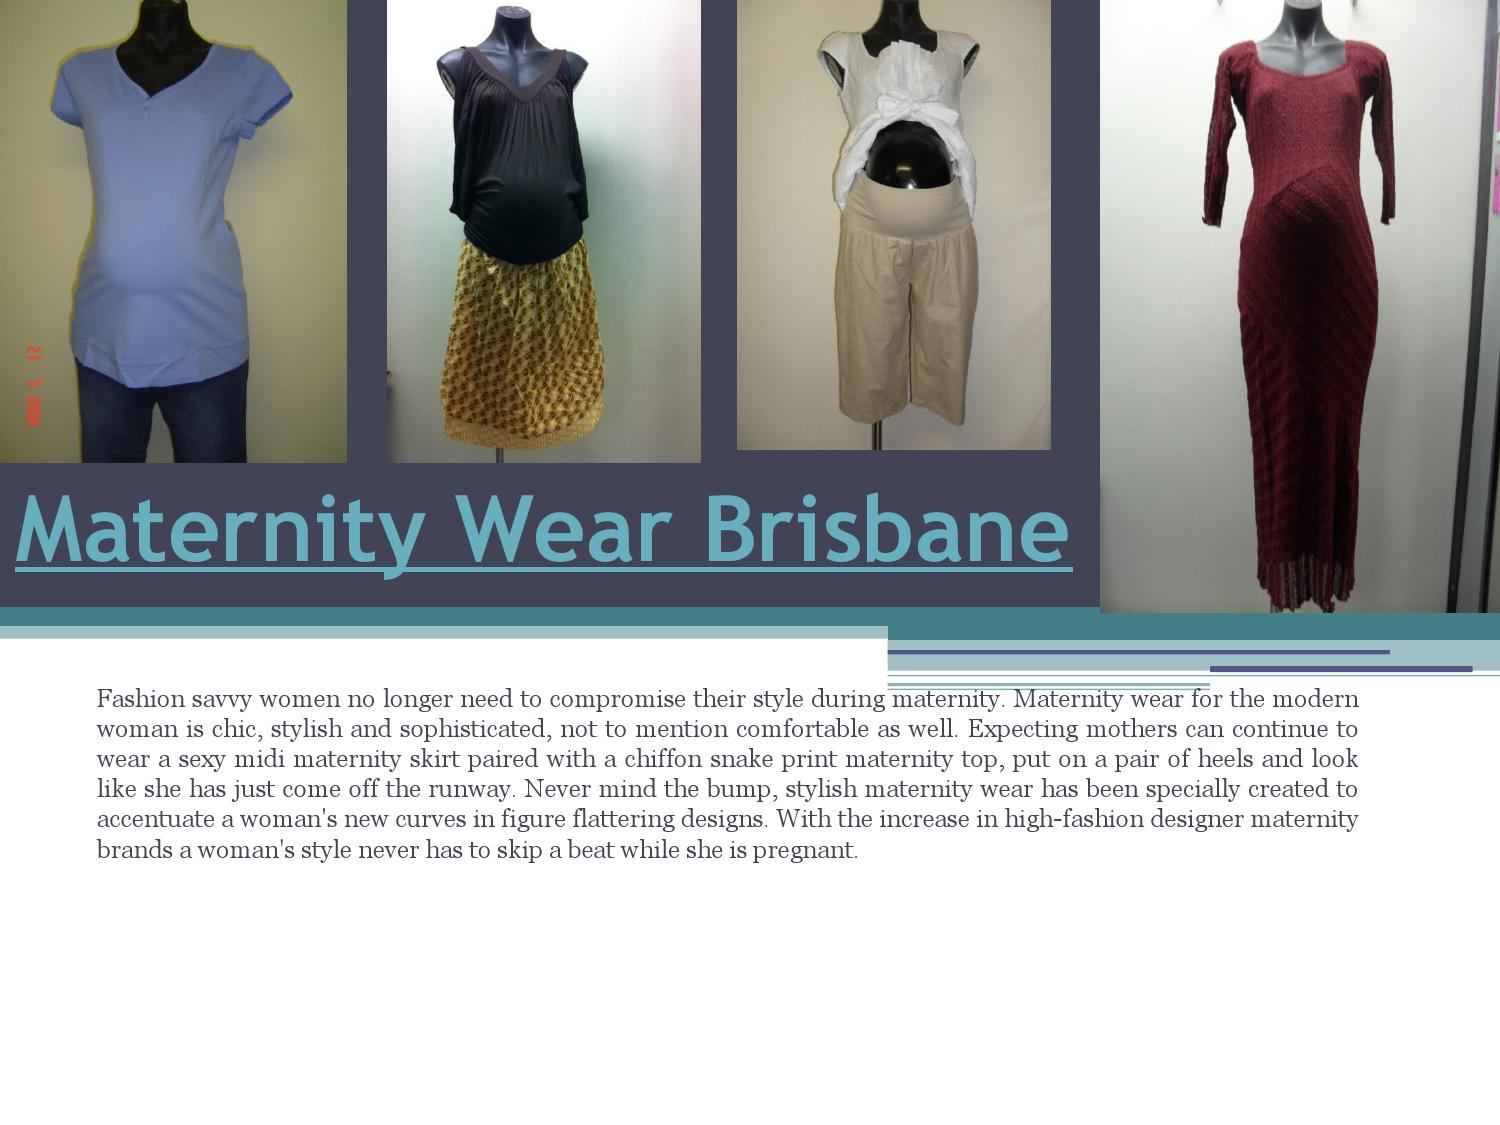 I'm not sure which side of Brisbane you're on, but at Aspley on the northside, there is a maternity wear outlet store. Though for the life of me I can't remember the name of it. It's across from.